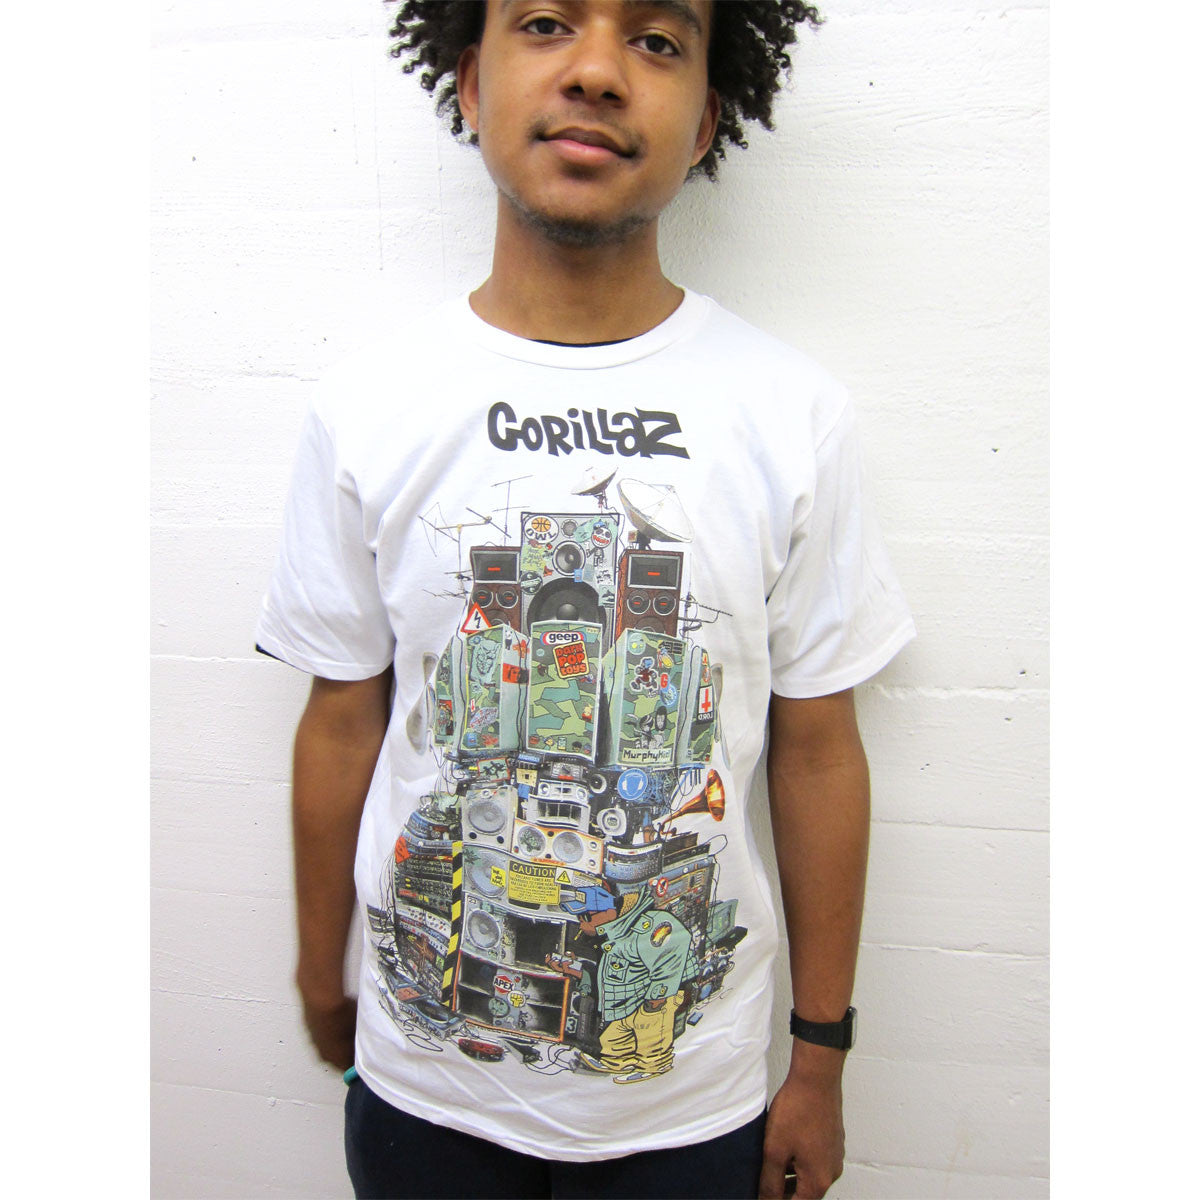 Gorillaz: Multi Boomboxes Shirt - White model